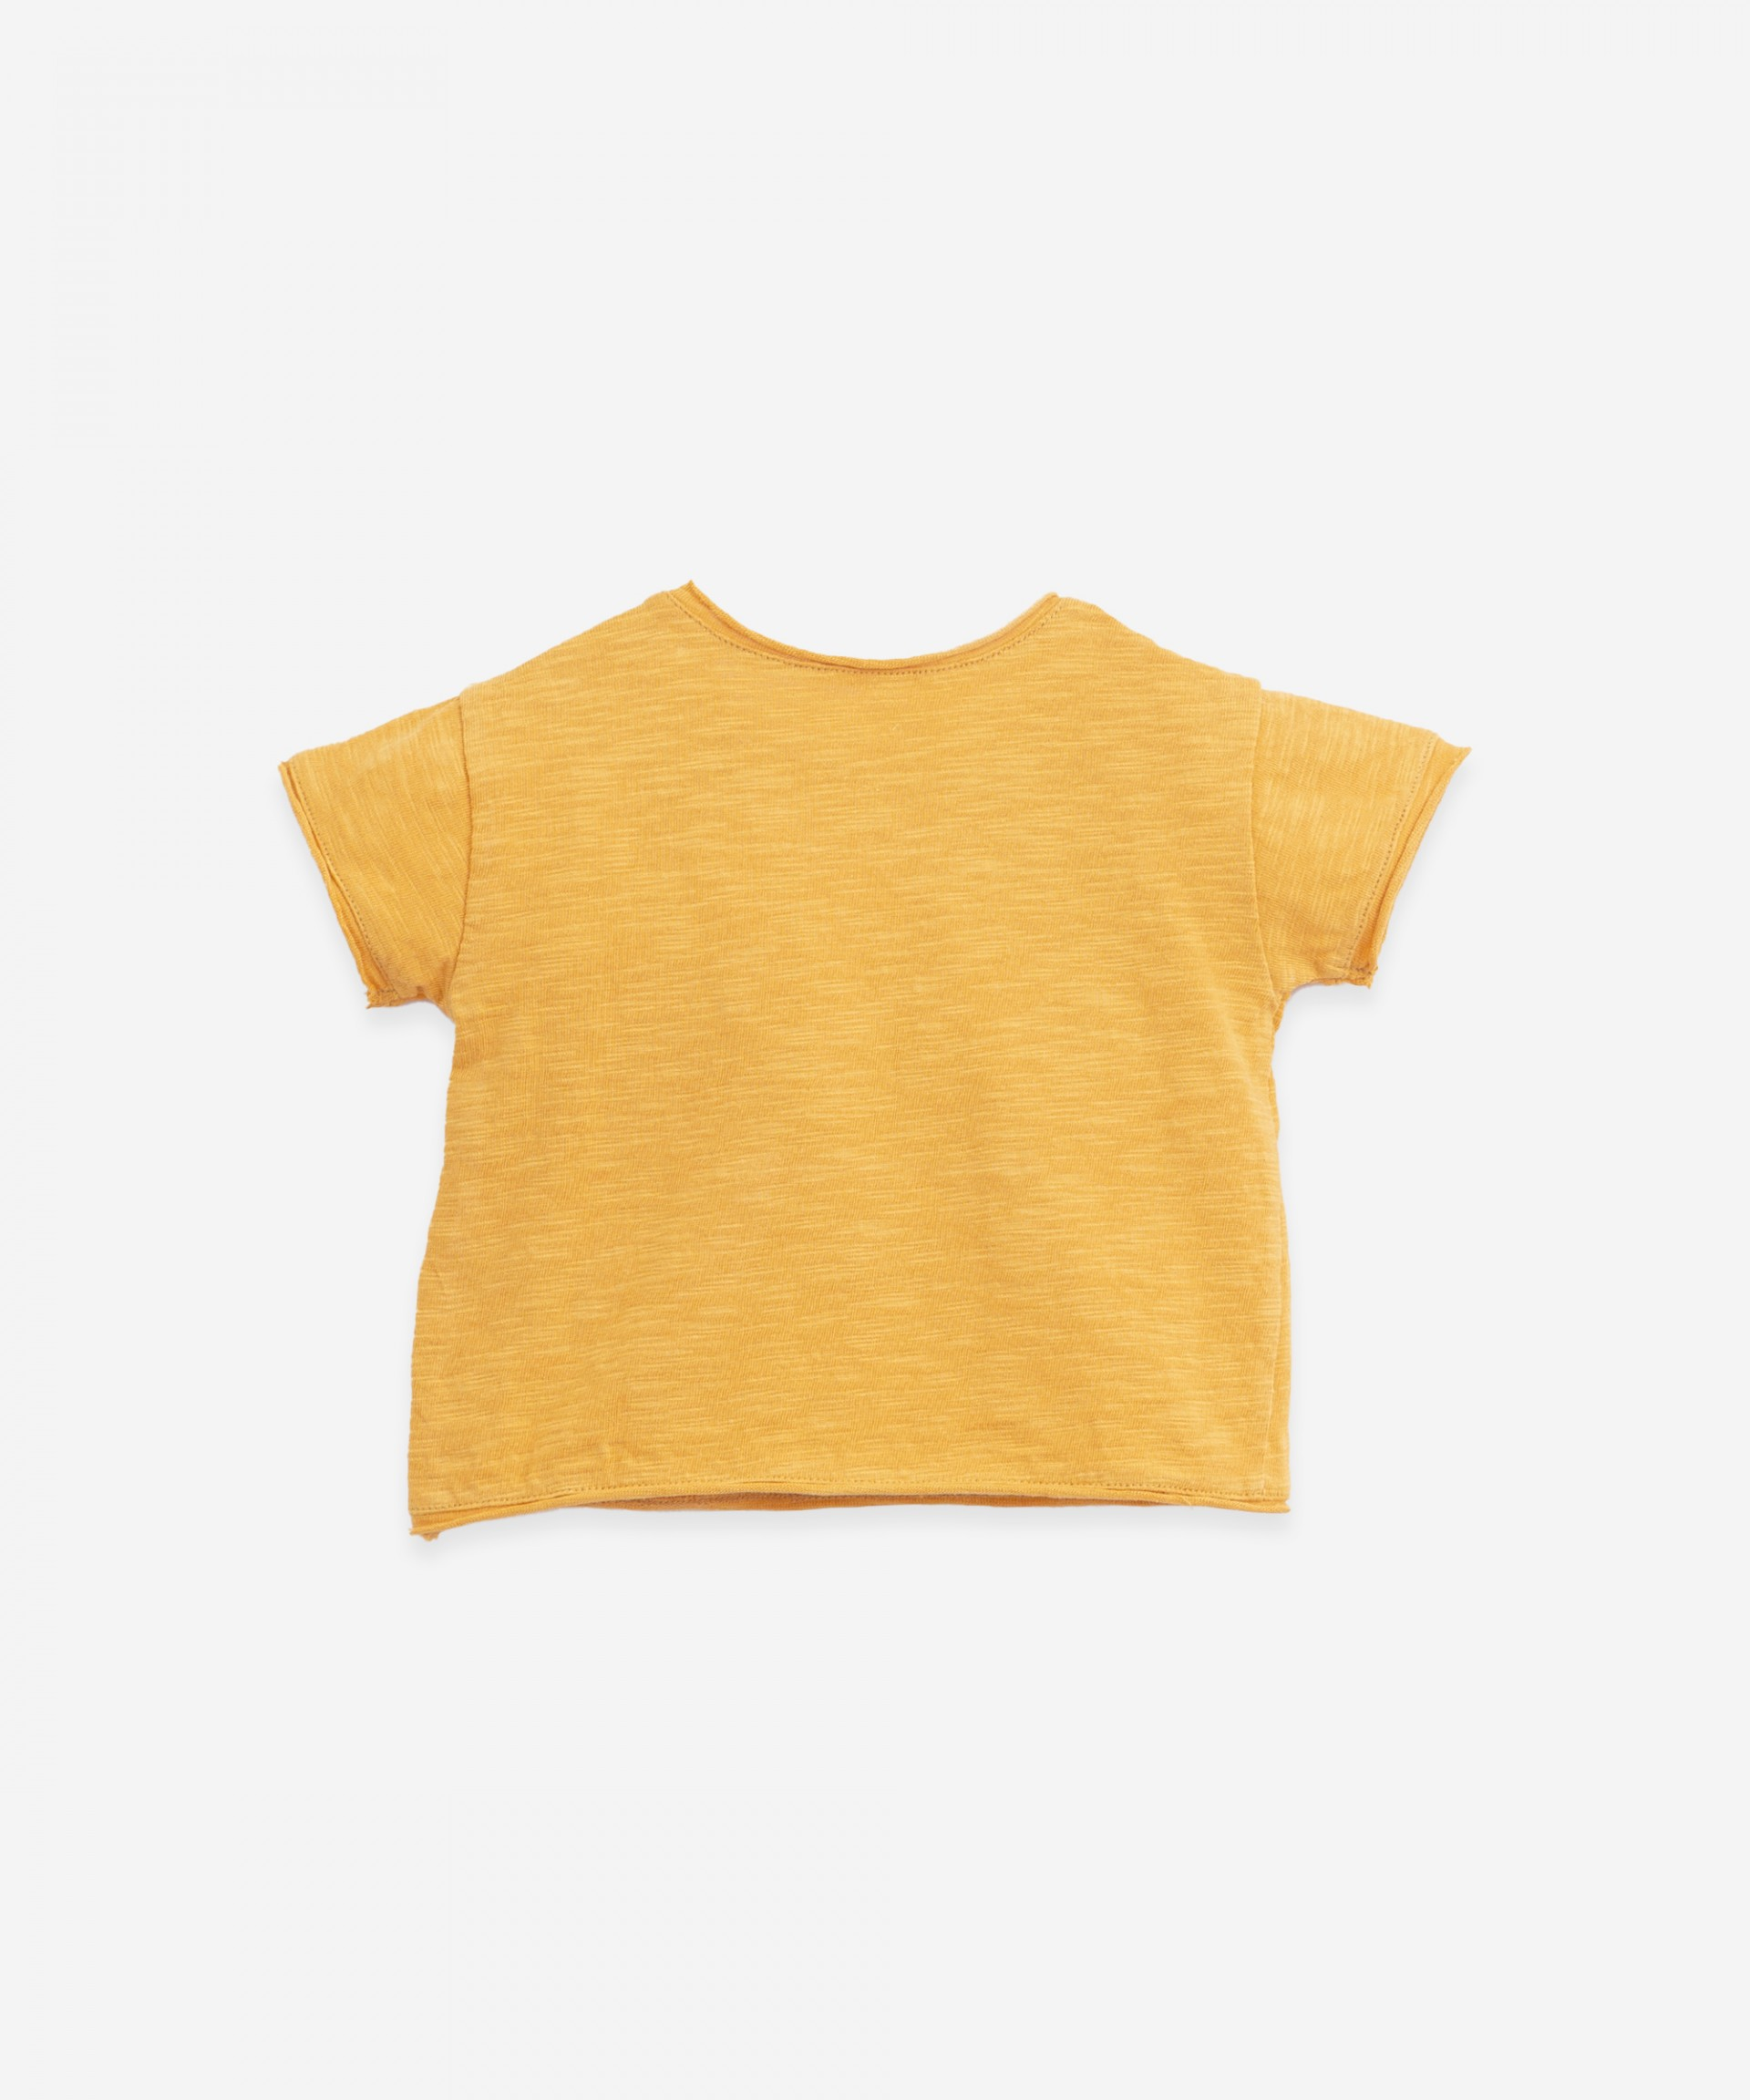 T-shirt in organic cotton with a pocket| Woodwork